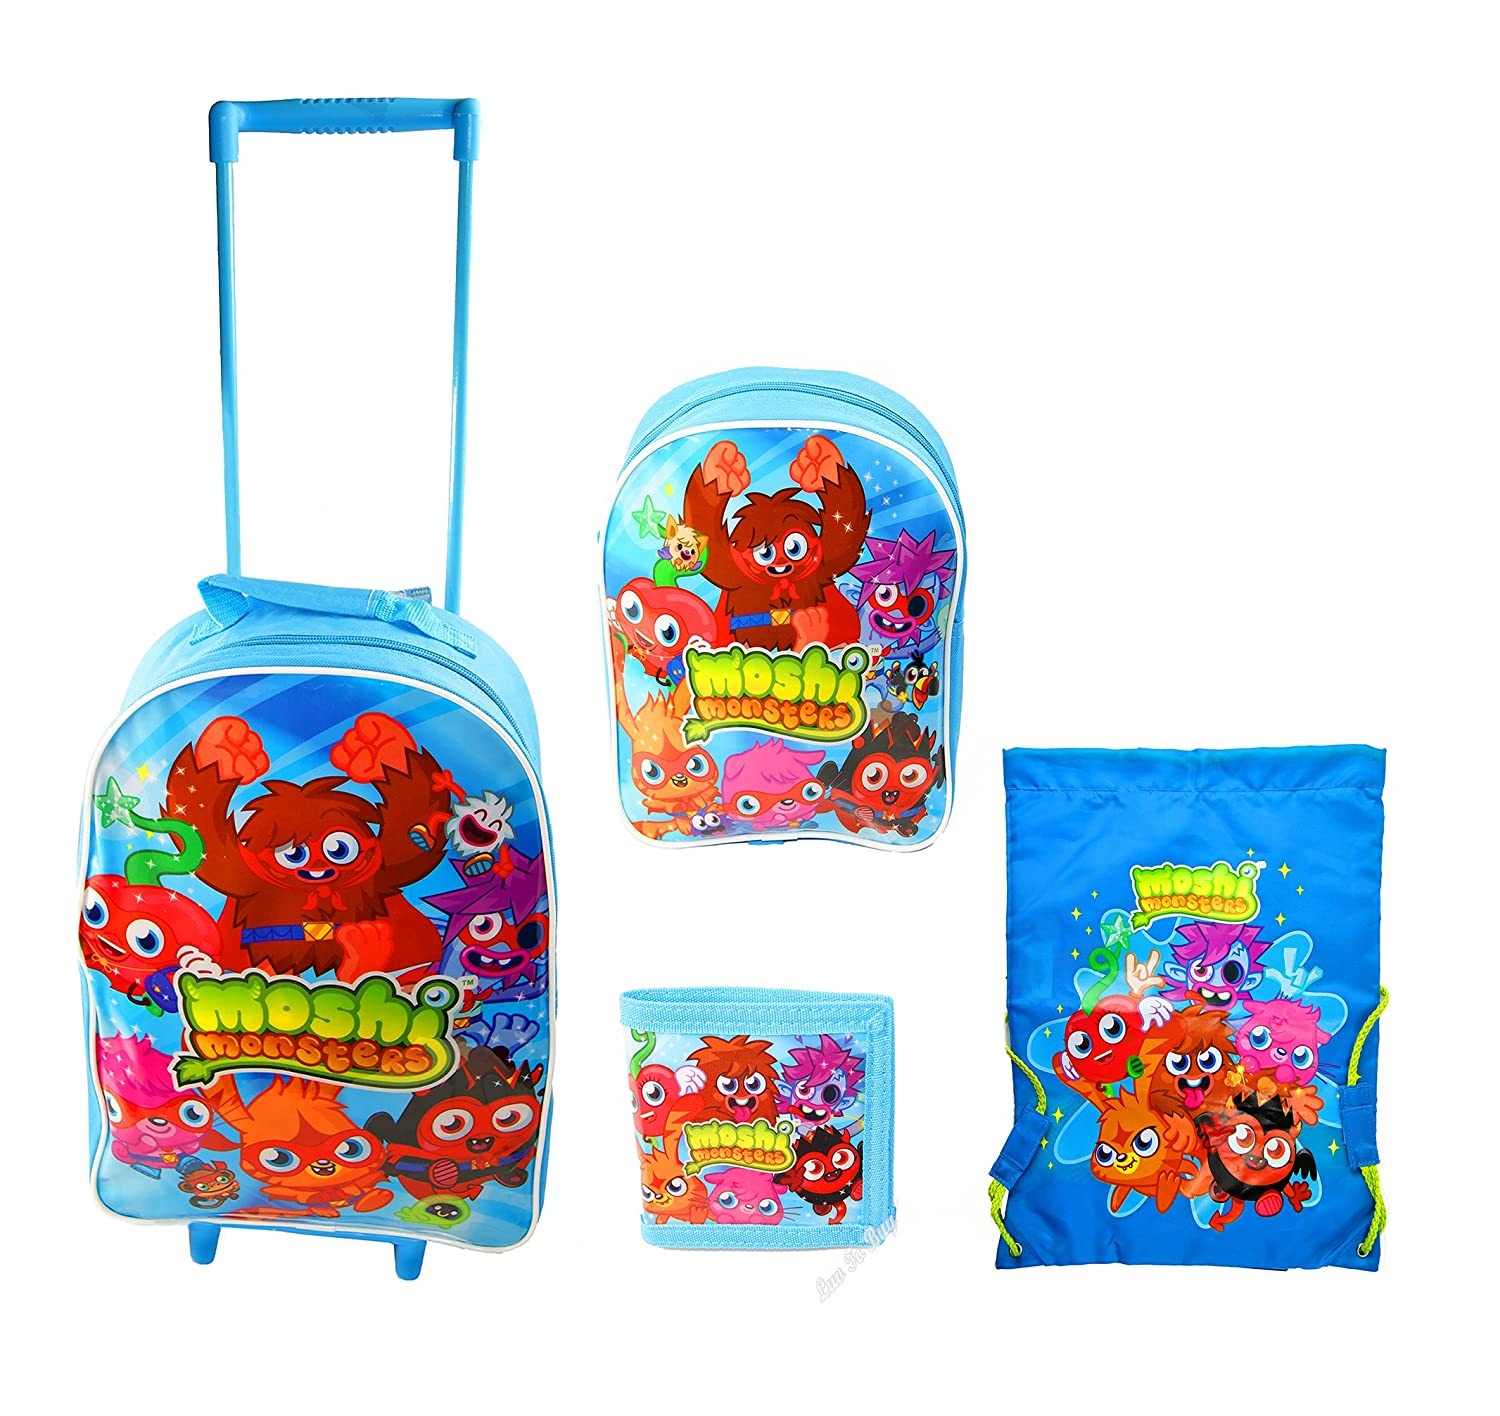 Childrenmoshi monsters childrens 4 piece luggage setwheeled bagholiday bag setofficial licensed amazon co uk luggage